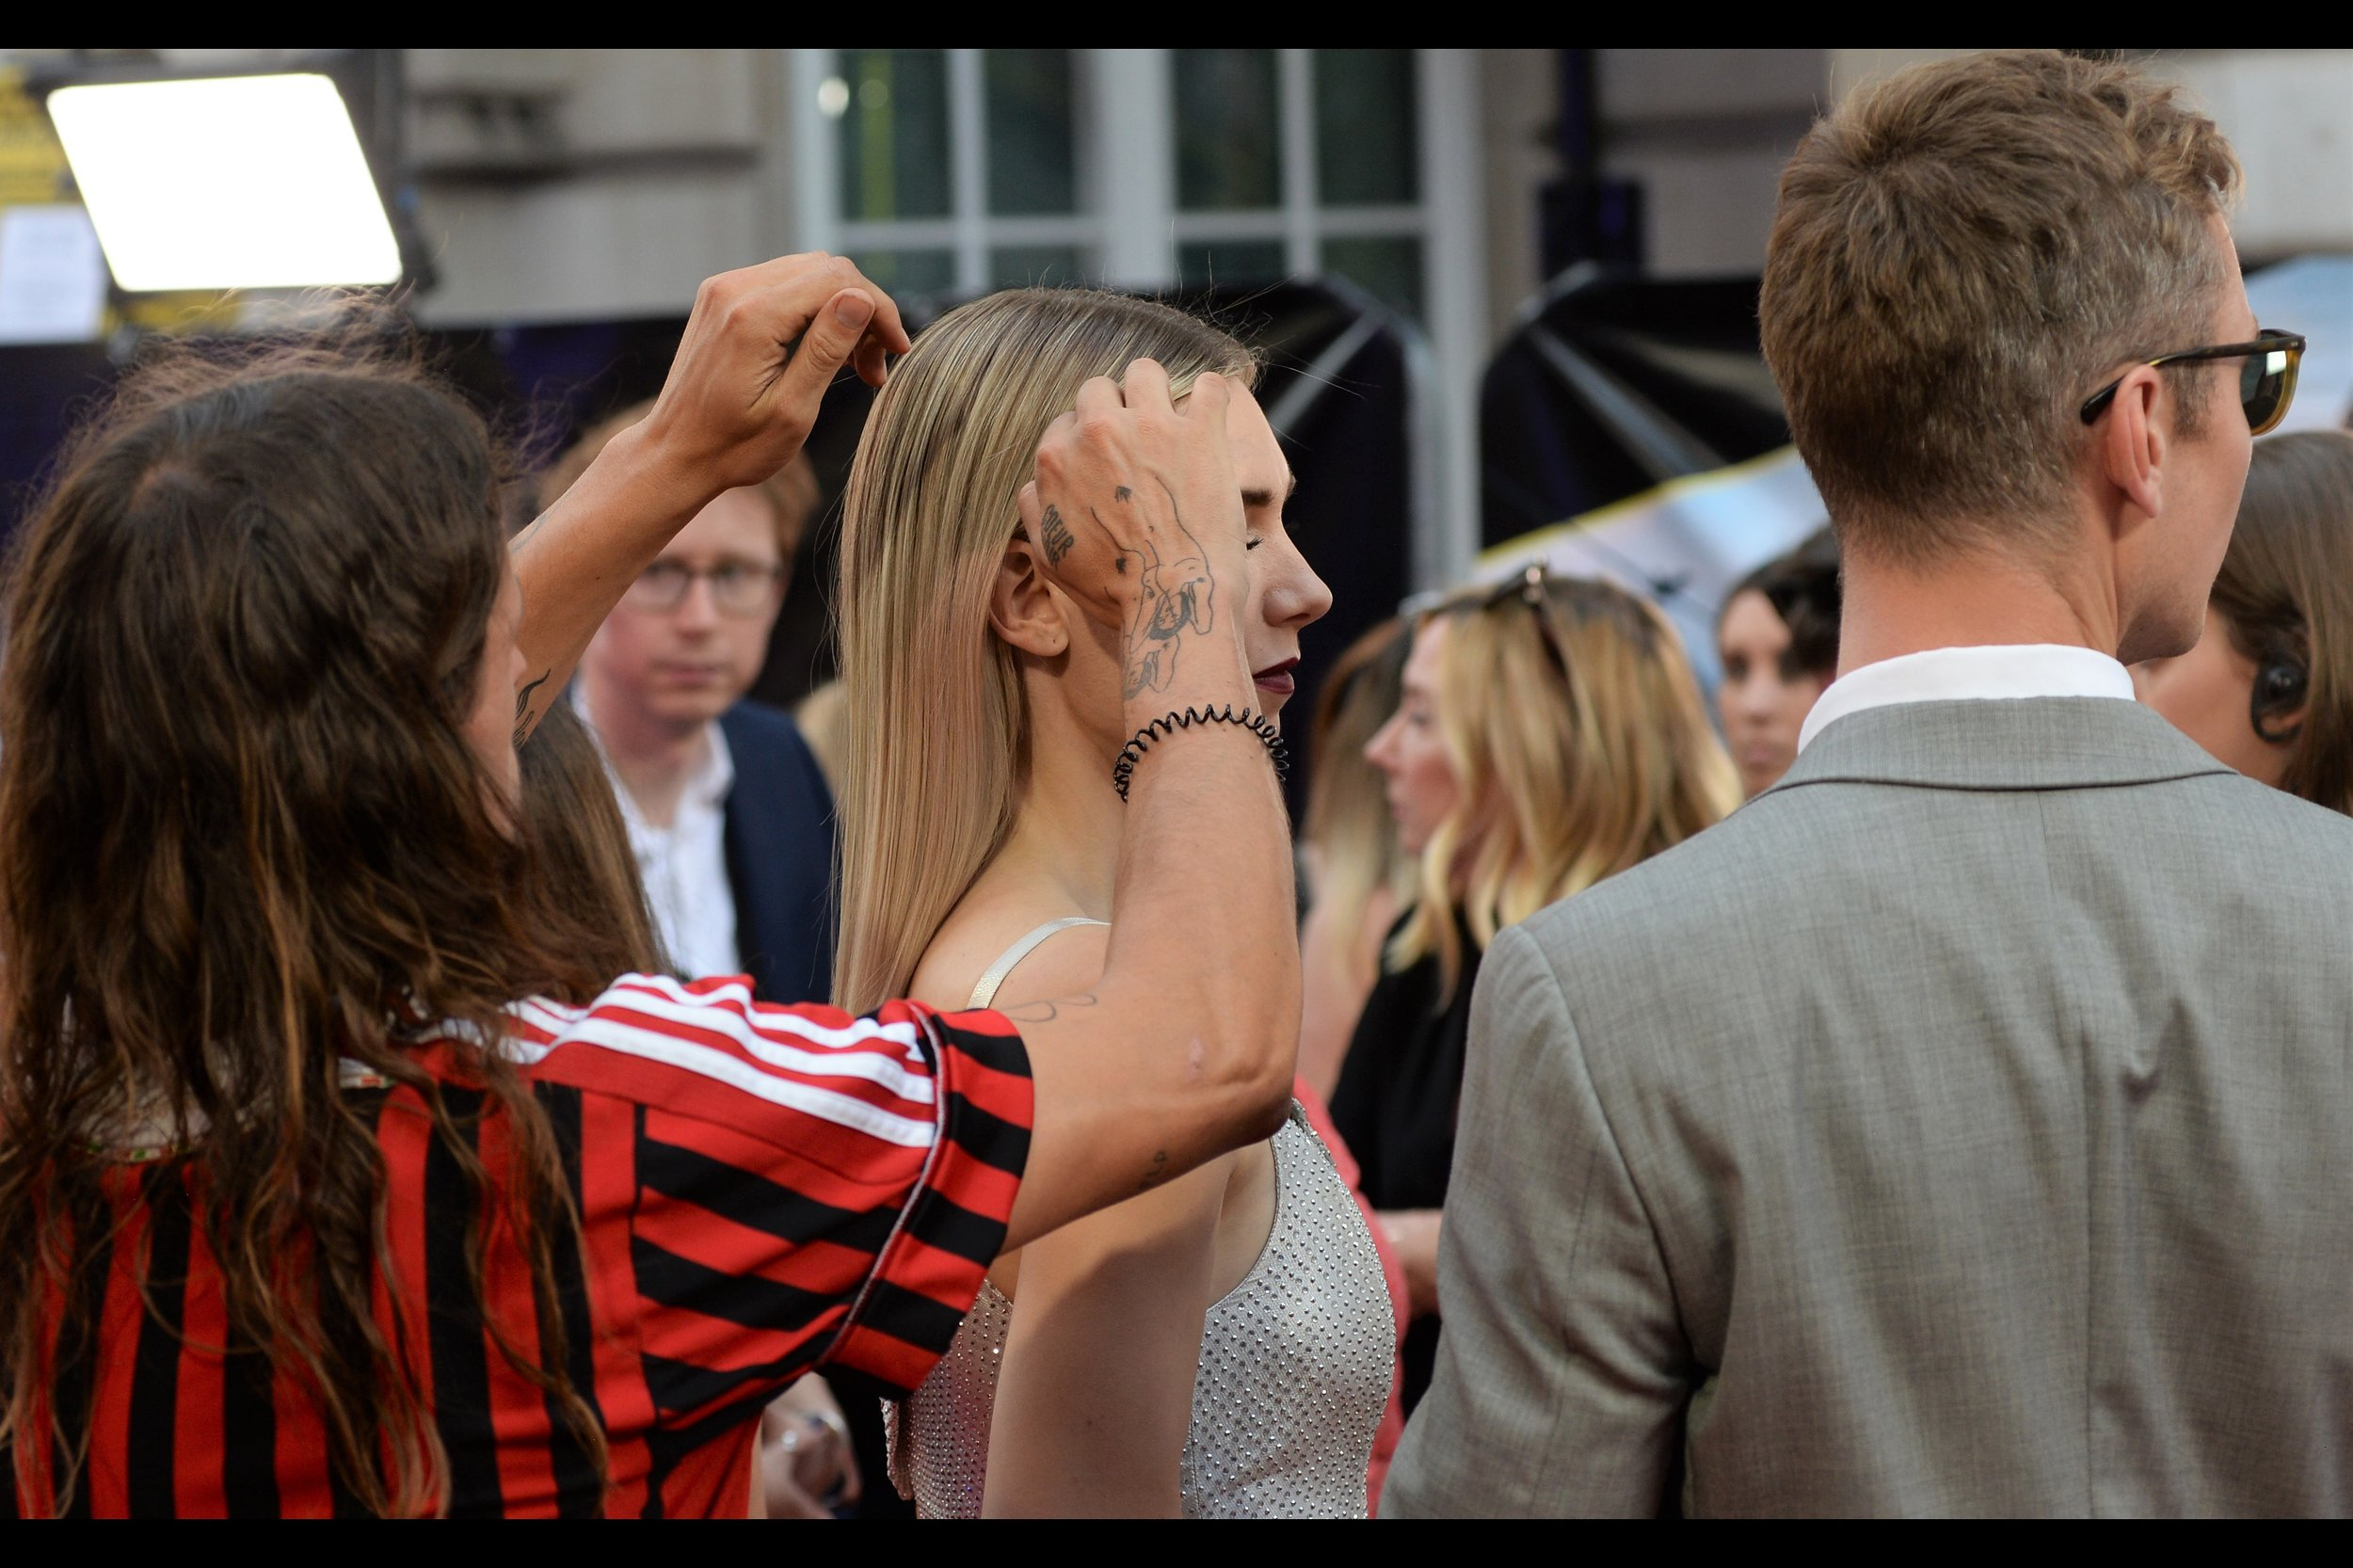 """""""That last breeze cost us ten misplaced hairs, Vanessa… your ongoing recklessness is tearing at my soul…""""  The Grooming Of Vanessa Kirby, also known as """"The Hobbs & Shaw Premiere"""" continues…"""